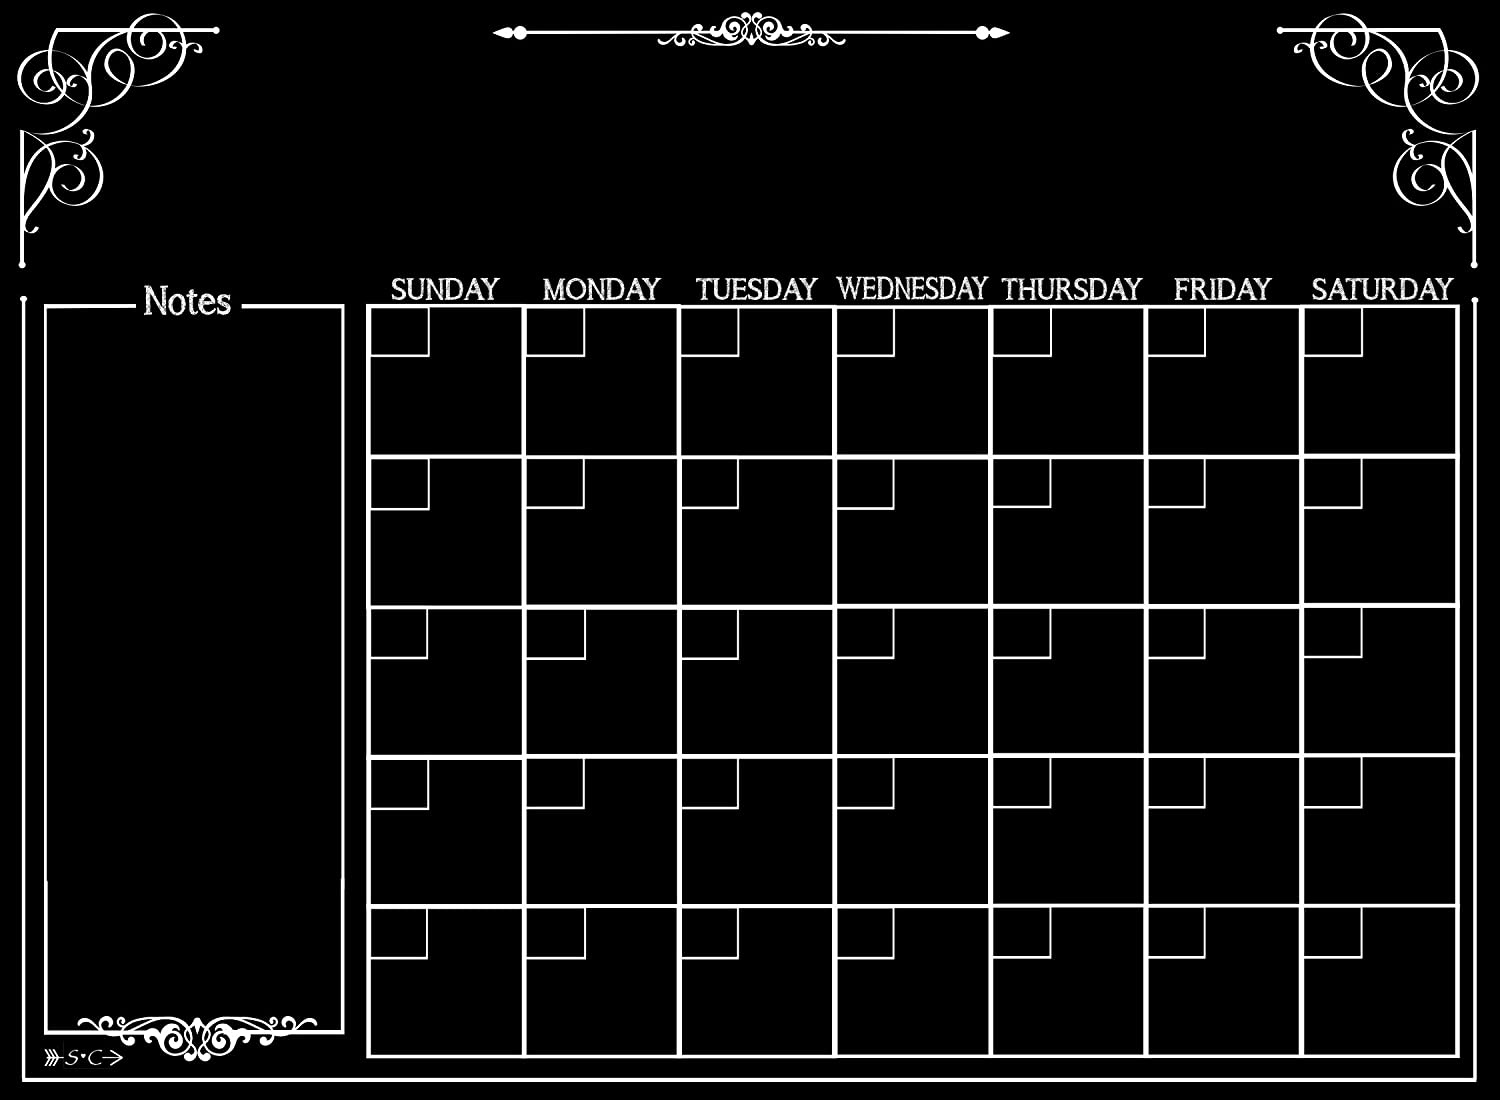 Calendar | Magnetic Chalkboard Style Refrigerator Calendar | Monthly Organizer | Dry Erase Board | Large Calendar | Kitchen Organizer | Smooth Black Surface | Waterproof | 11 x 15 inches Simply Chic Chateau